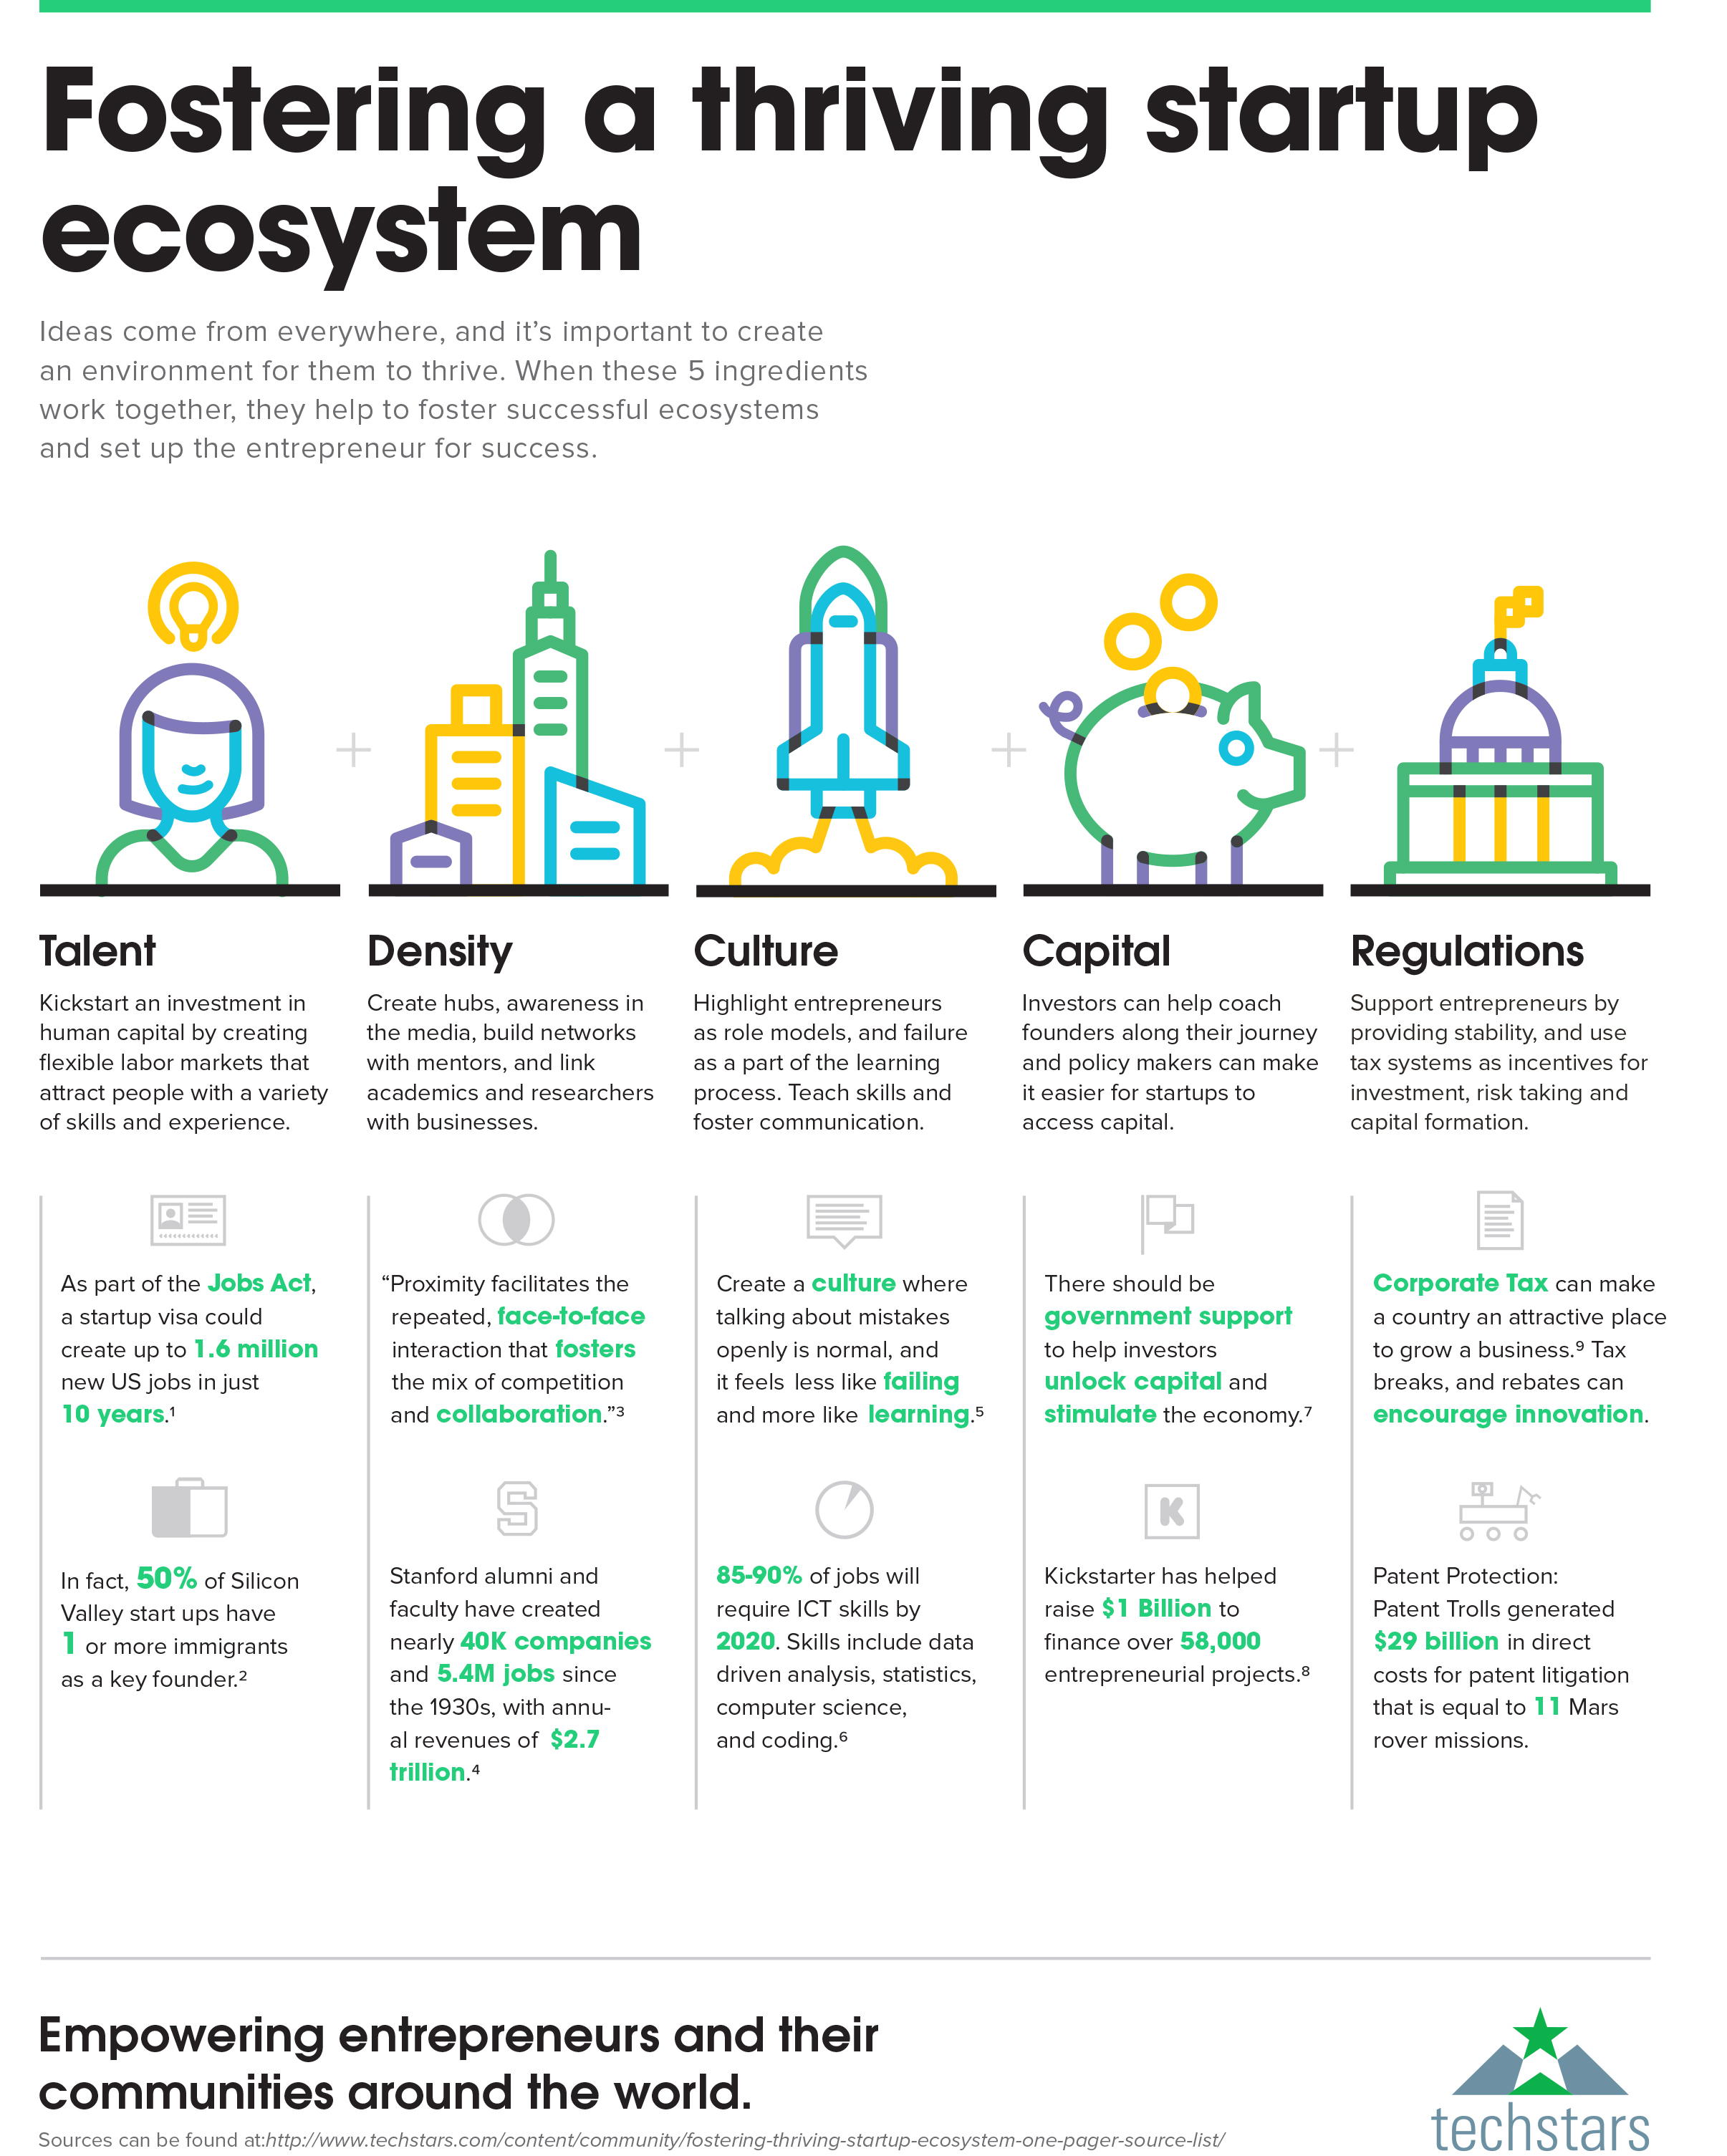 Fostering Startup Ecosystem